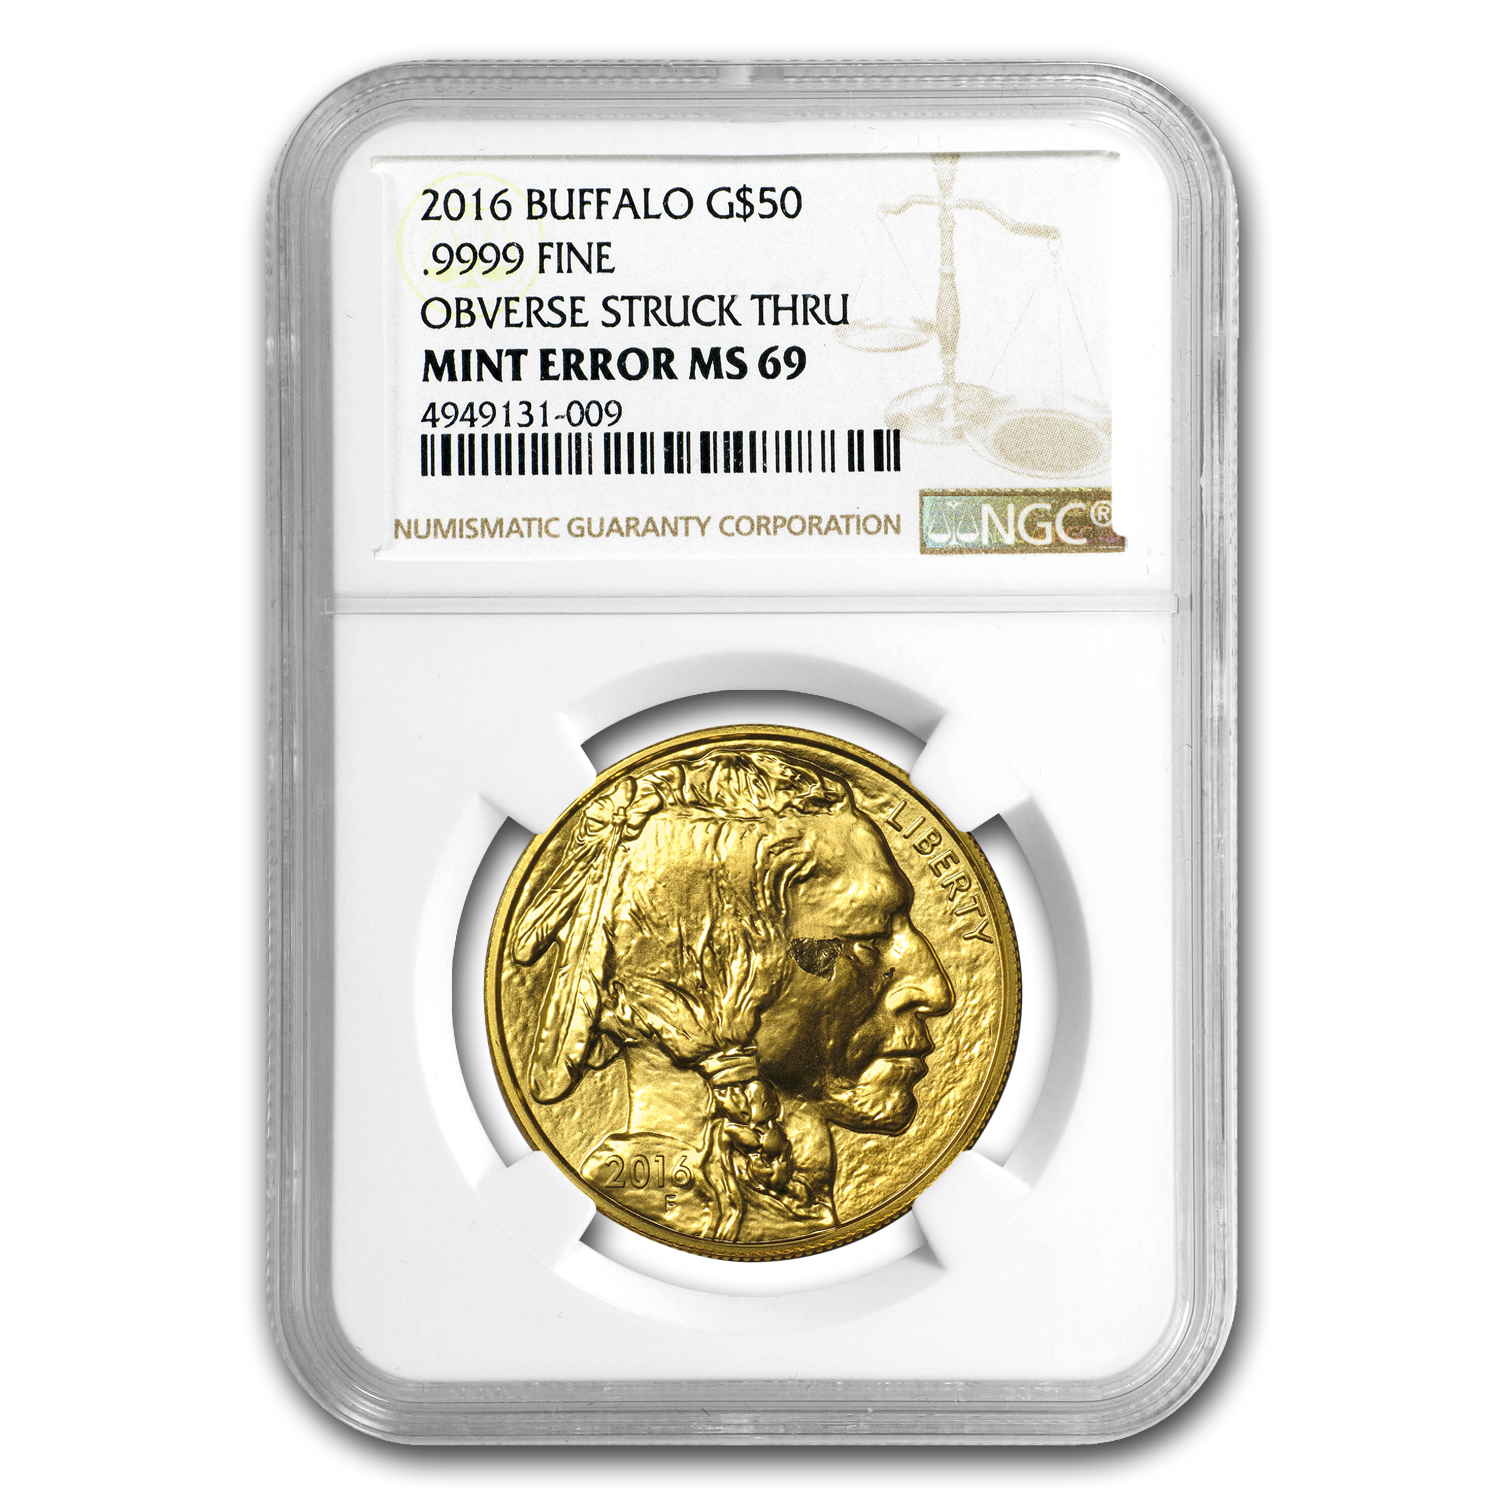 2016 1 oz Gold Buffalo MS-69 NGC (Mint Error, Obv Struck Thru)